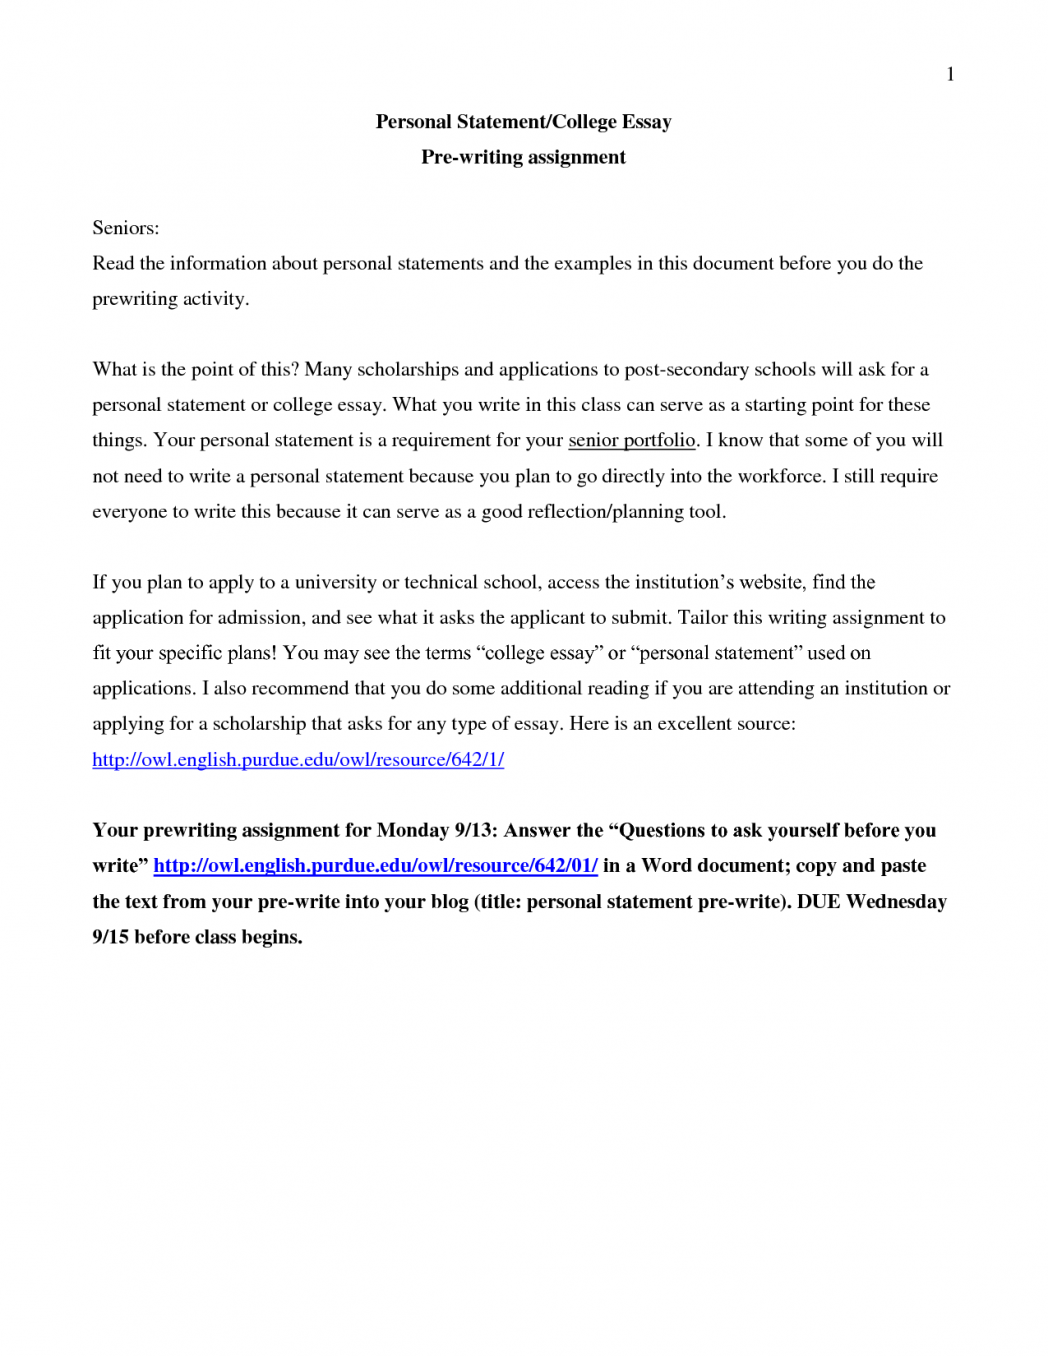 011 Expository Essay Samples For College Fake Generator Sample T2u0n Outline Title Free Idea 1048x1356 Amazing Full